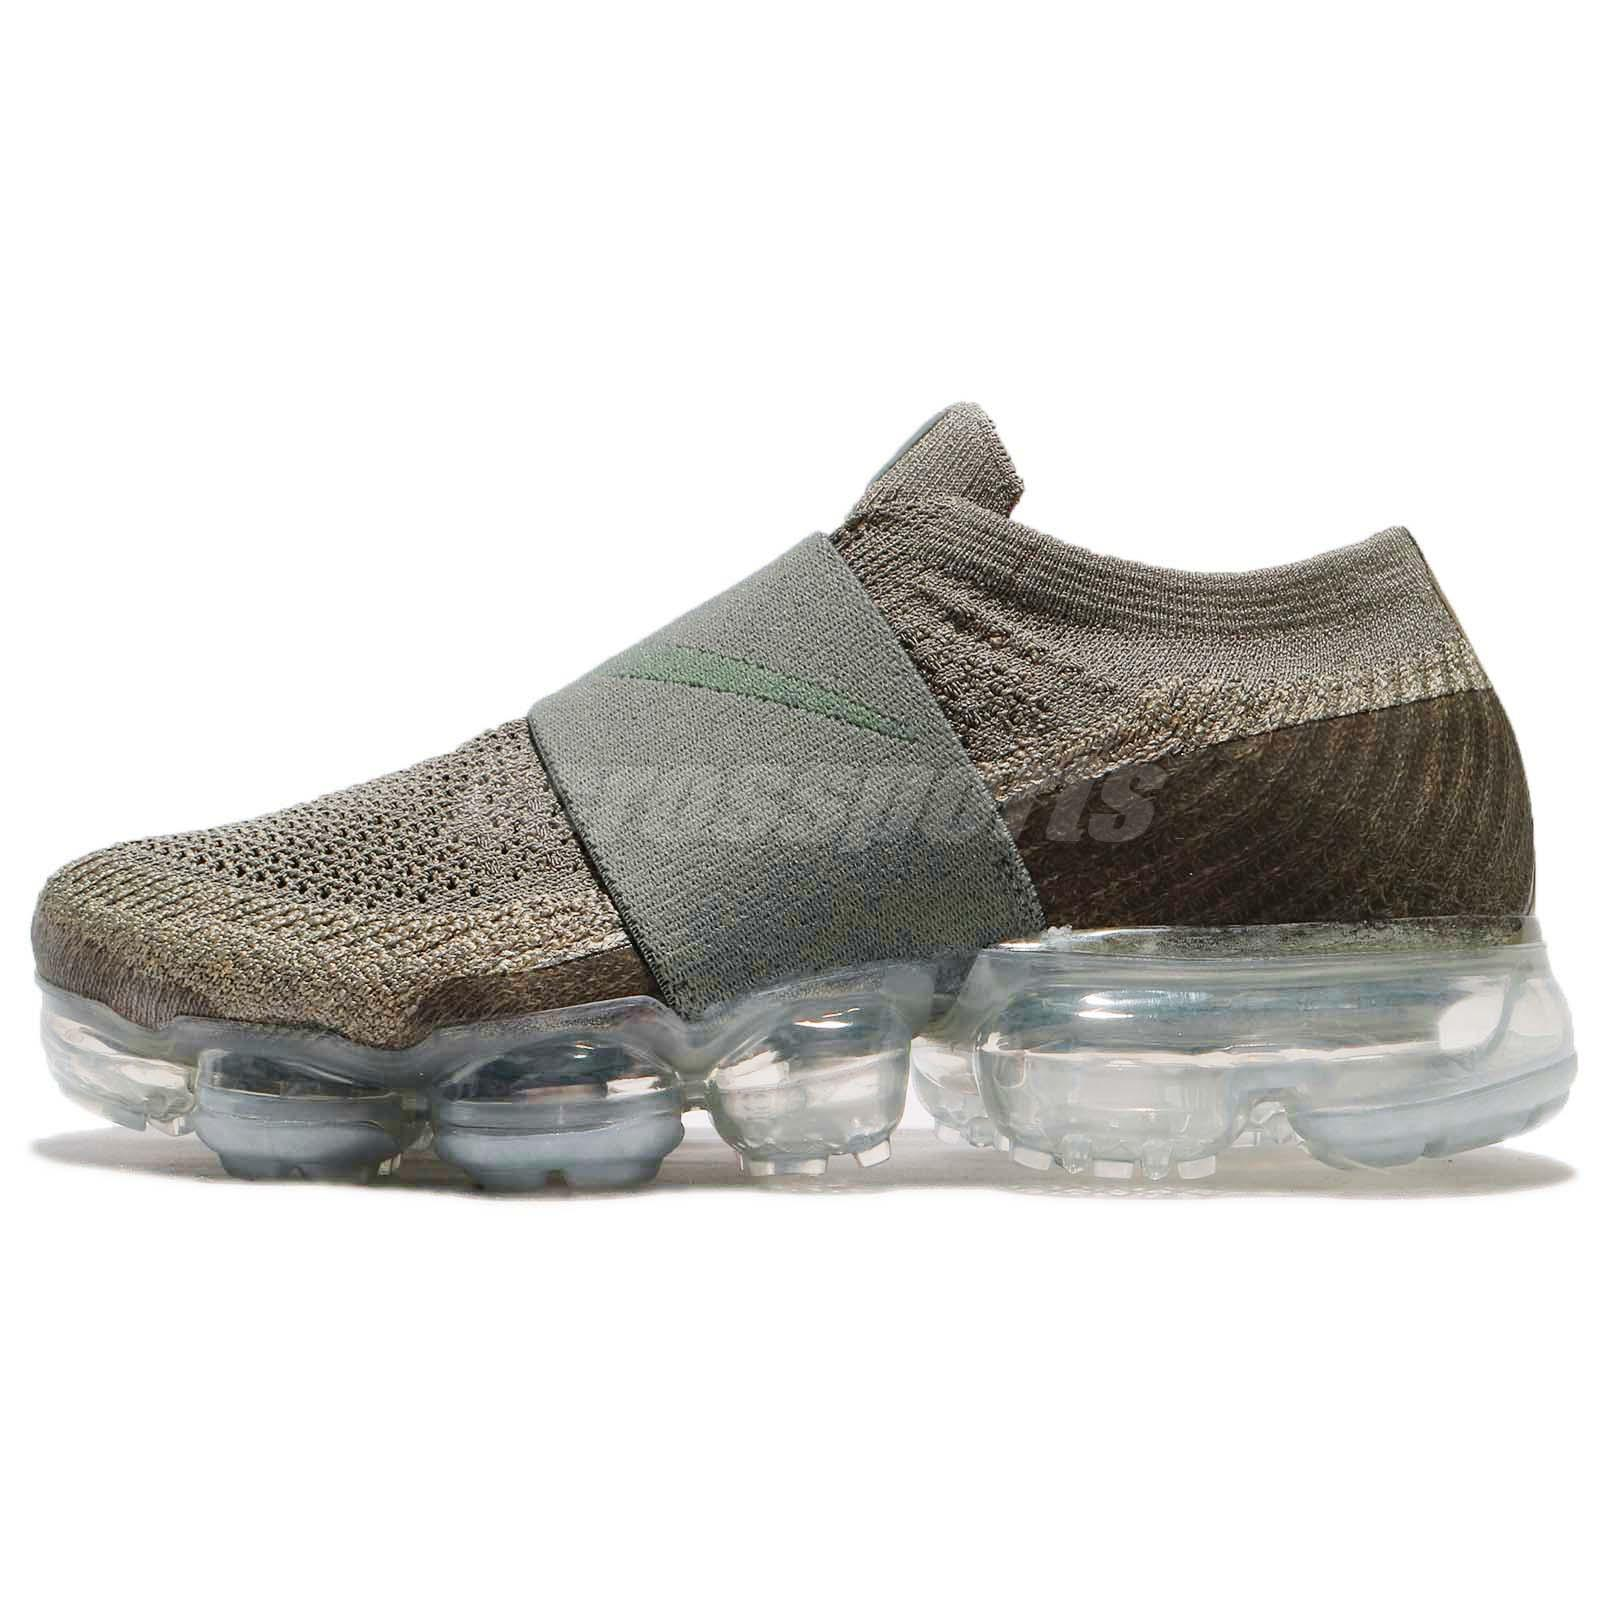 Nike Wmns Air Vapormax FK Moc Flyknit Dark Stucco Green Women Running AA4155013